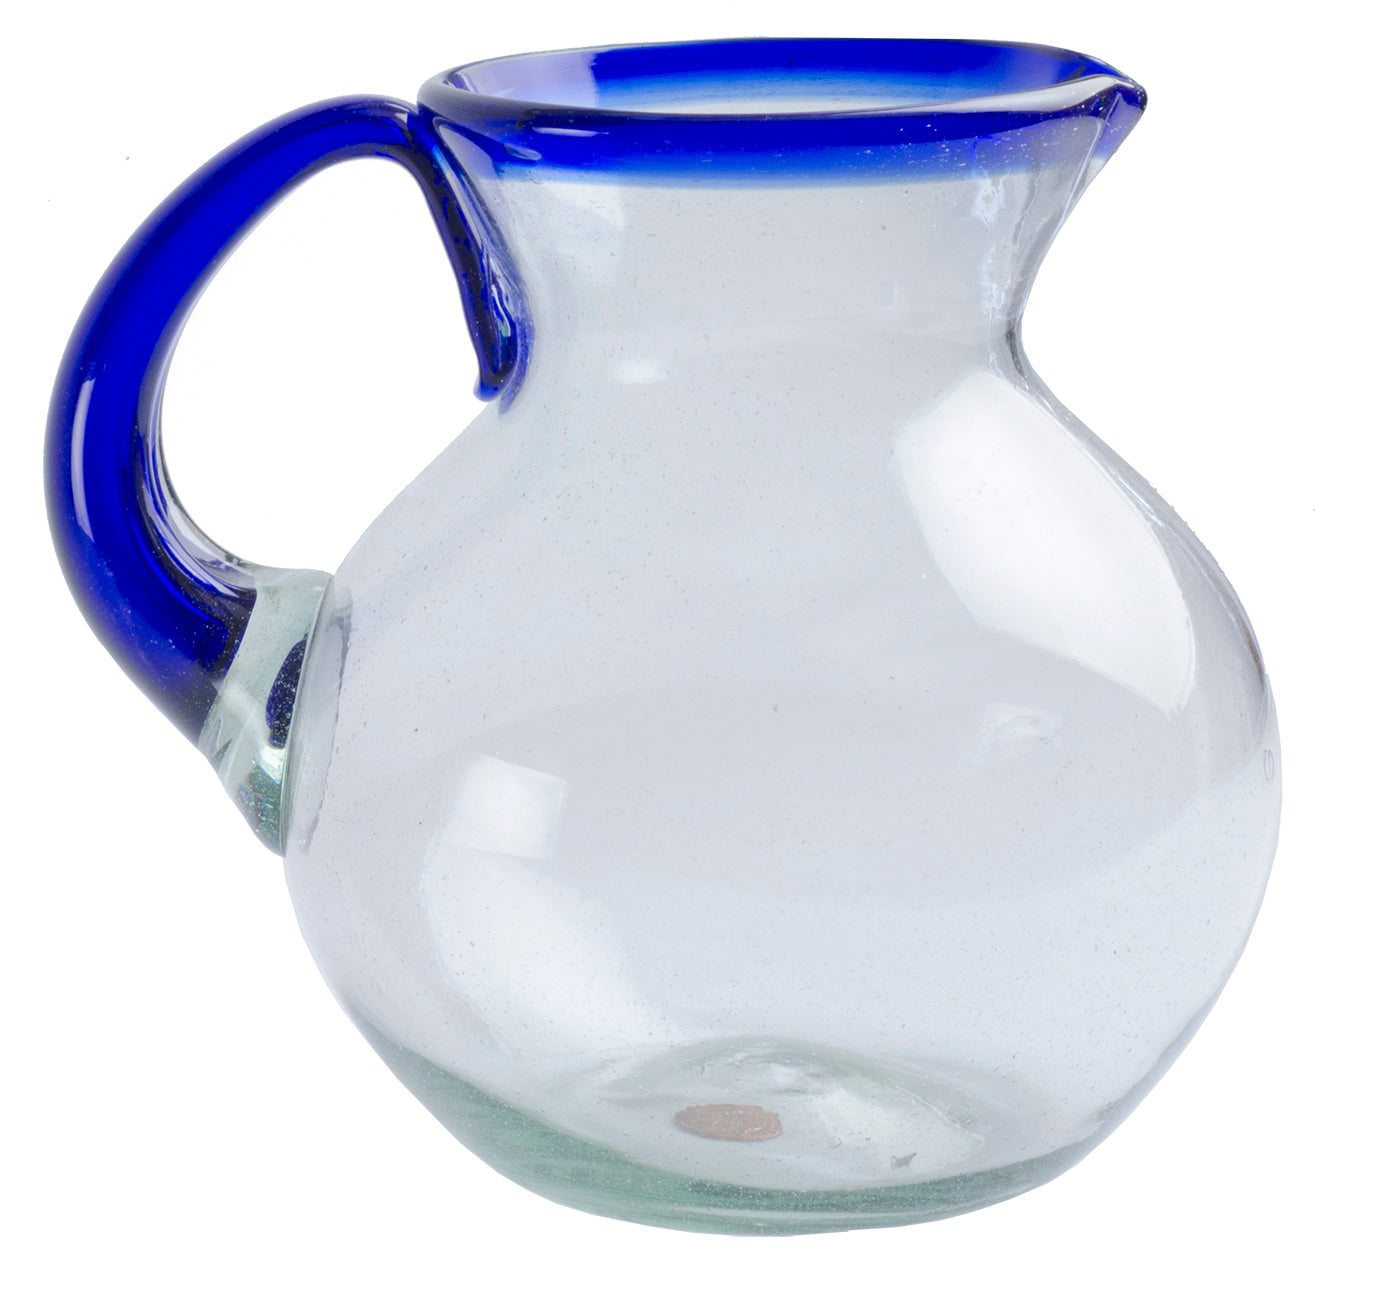 Orion Blue Rim 80 oz Bola Pitcher - Orion's Table Mexican Glassware